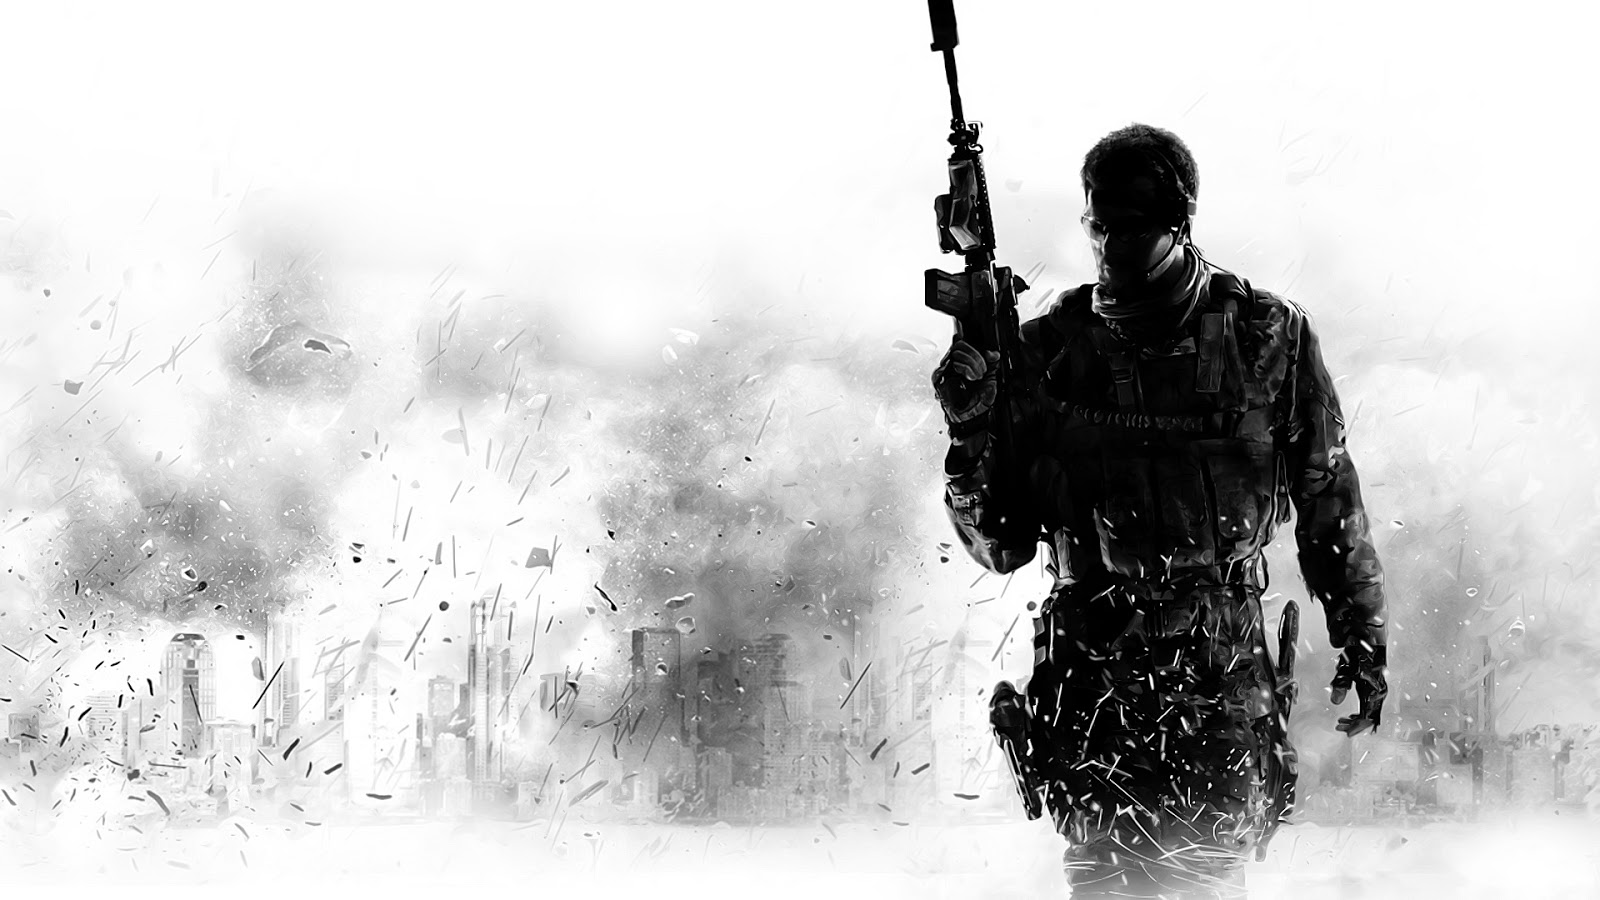 http://2.bp.blogspot.com/-HdqyGH7OQVQ/TfqbIhdTuqI/AAAAAAAAHoU/uA6-u4LVEV8/s1600/wallpaper_1080p_call_of_duty_3_HD.jpg